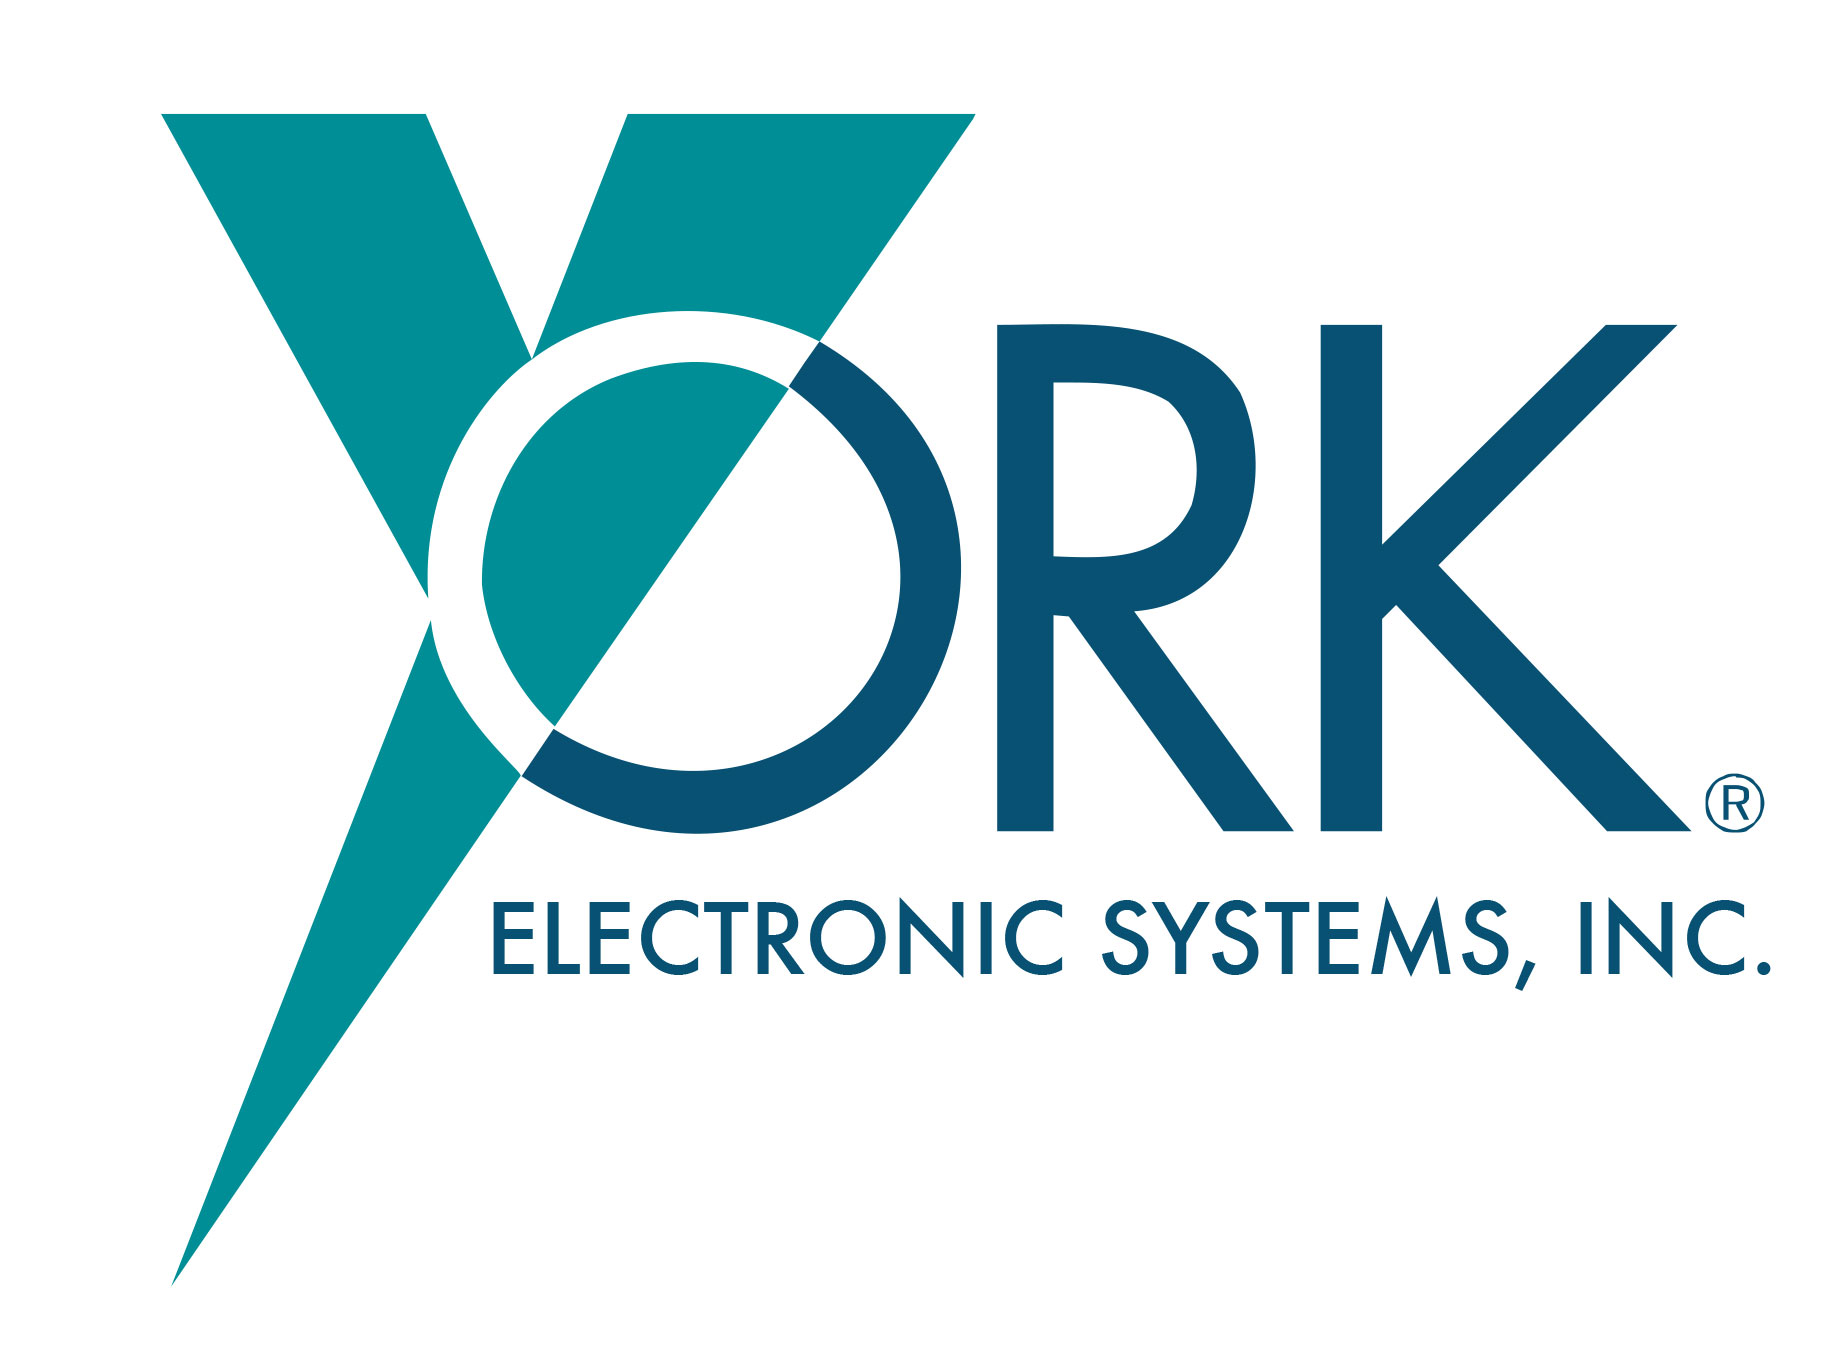 York Electronic Systems, Inc.